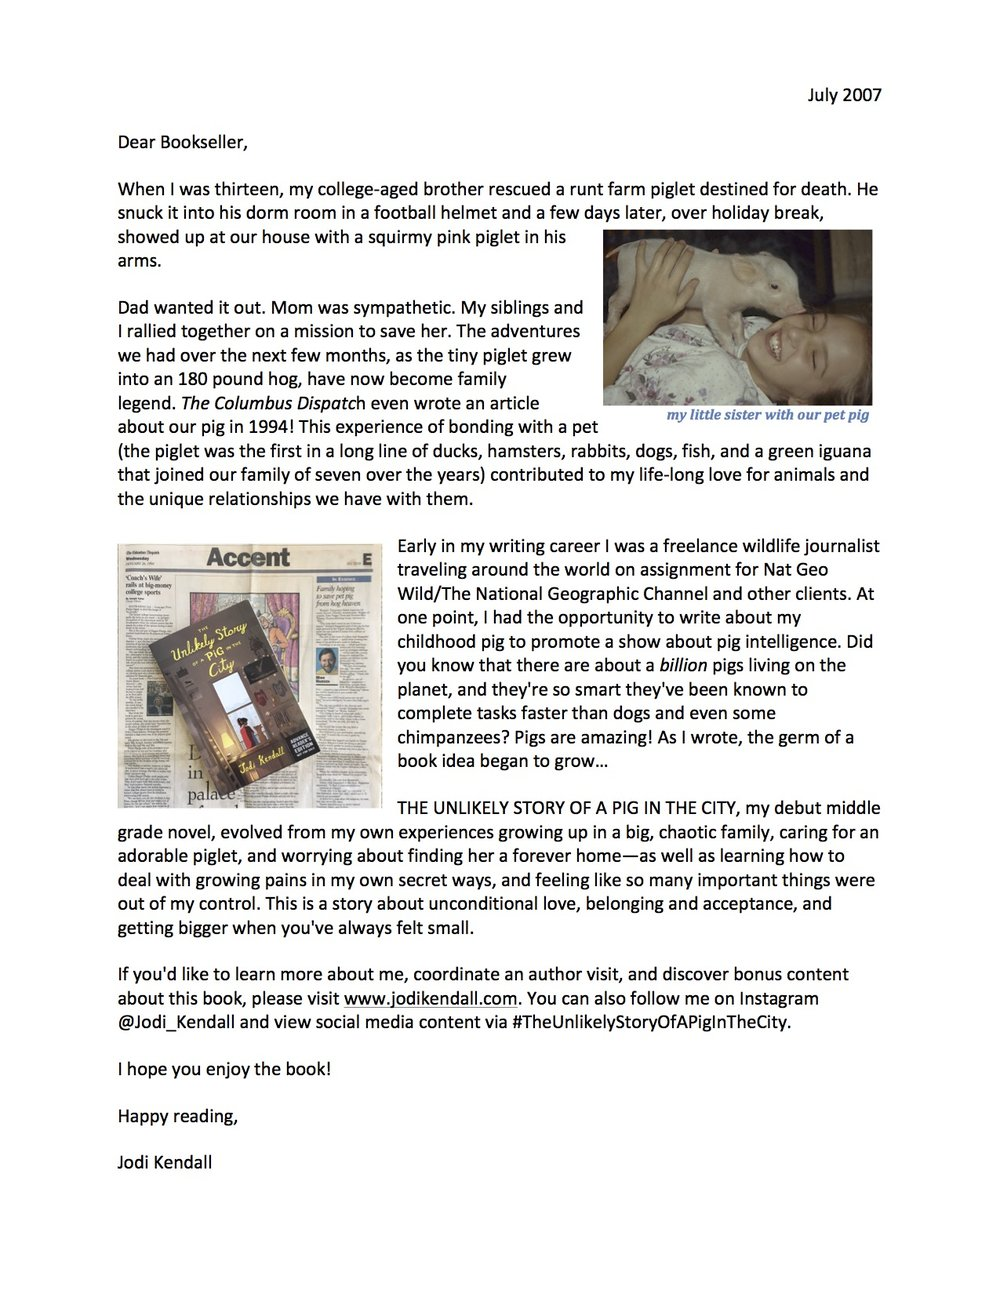 Bookstore Letter - Author shares the inspiration for the book